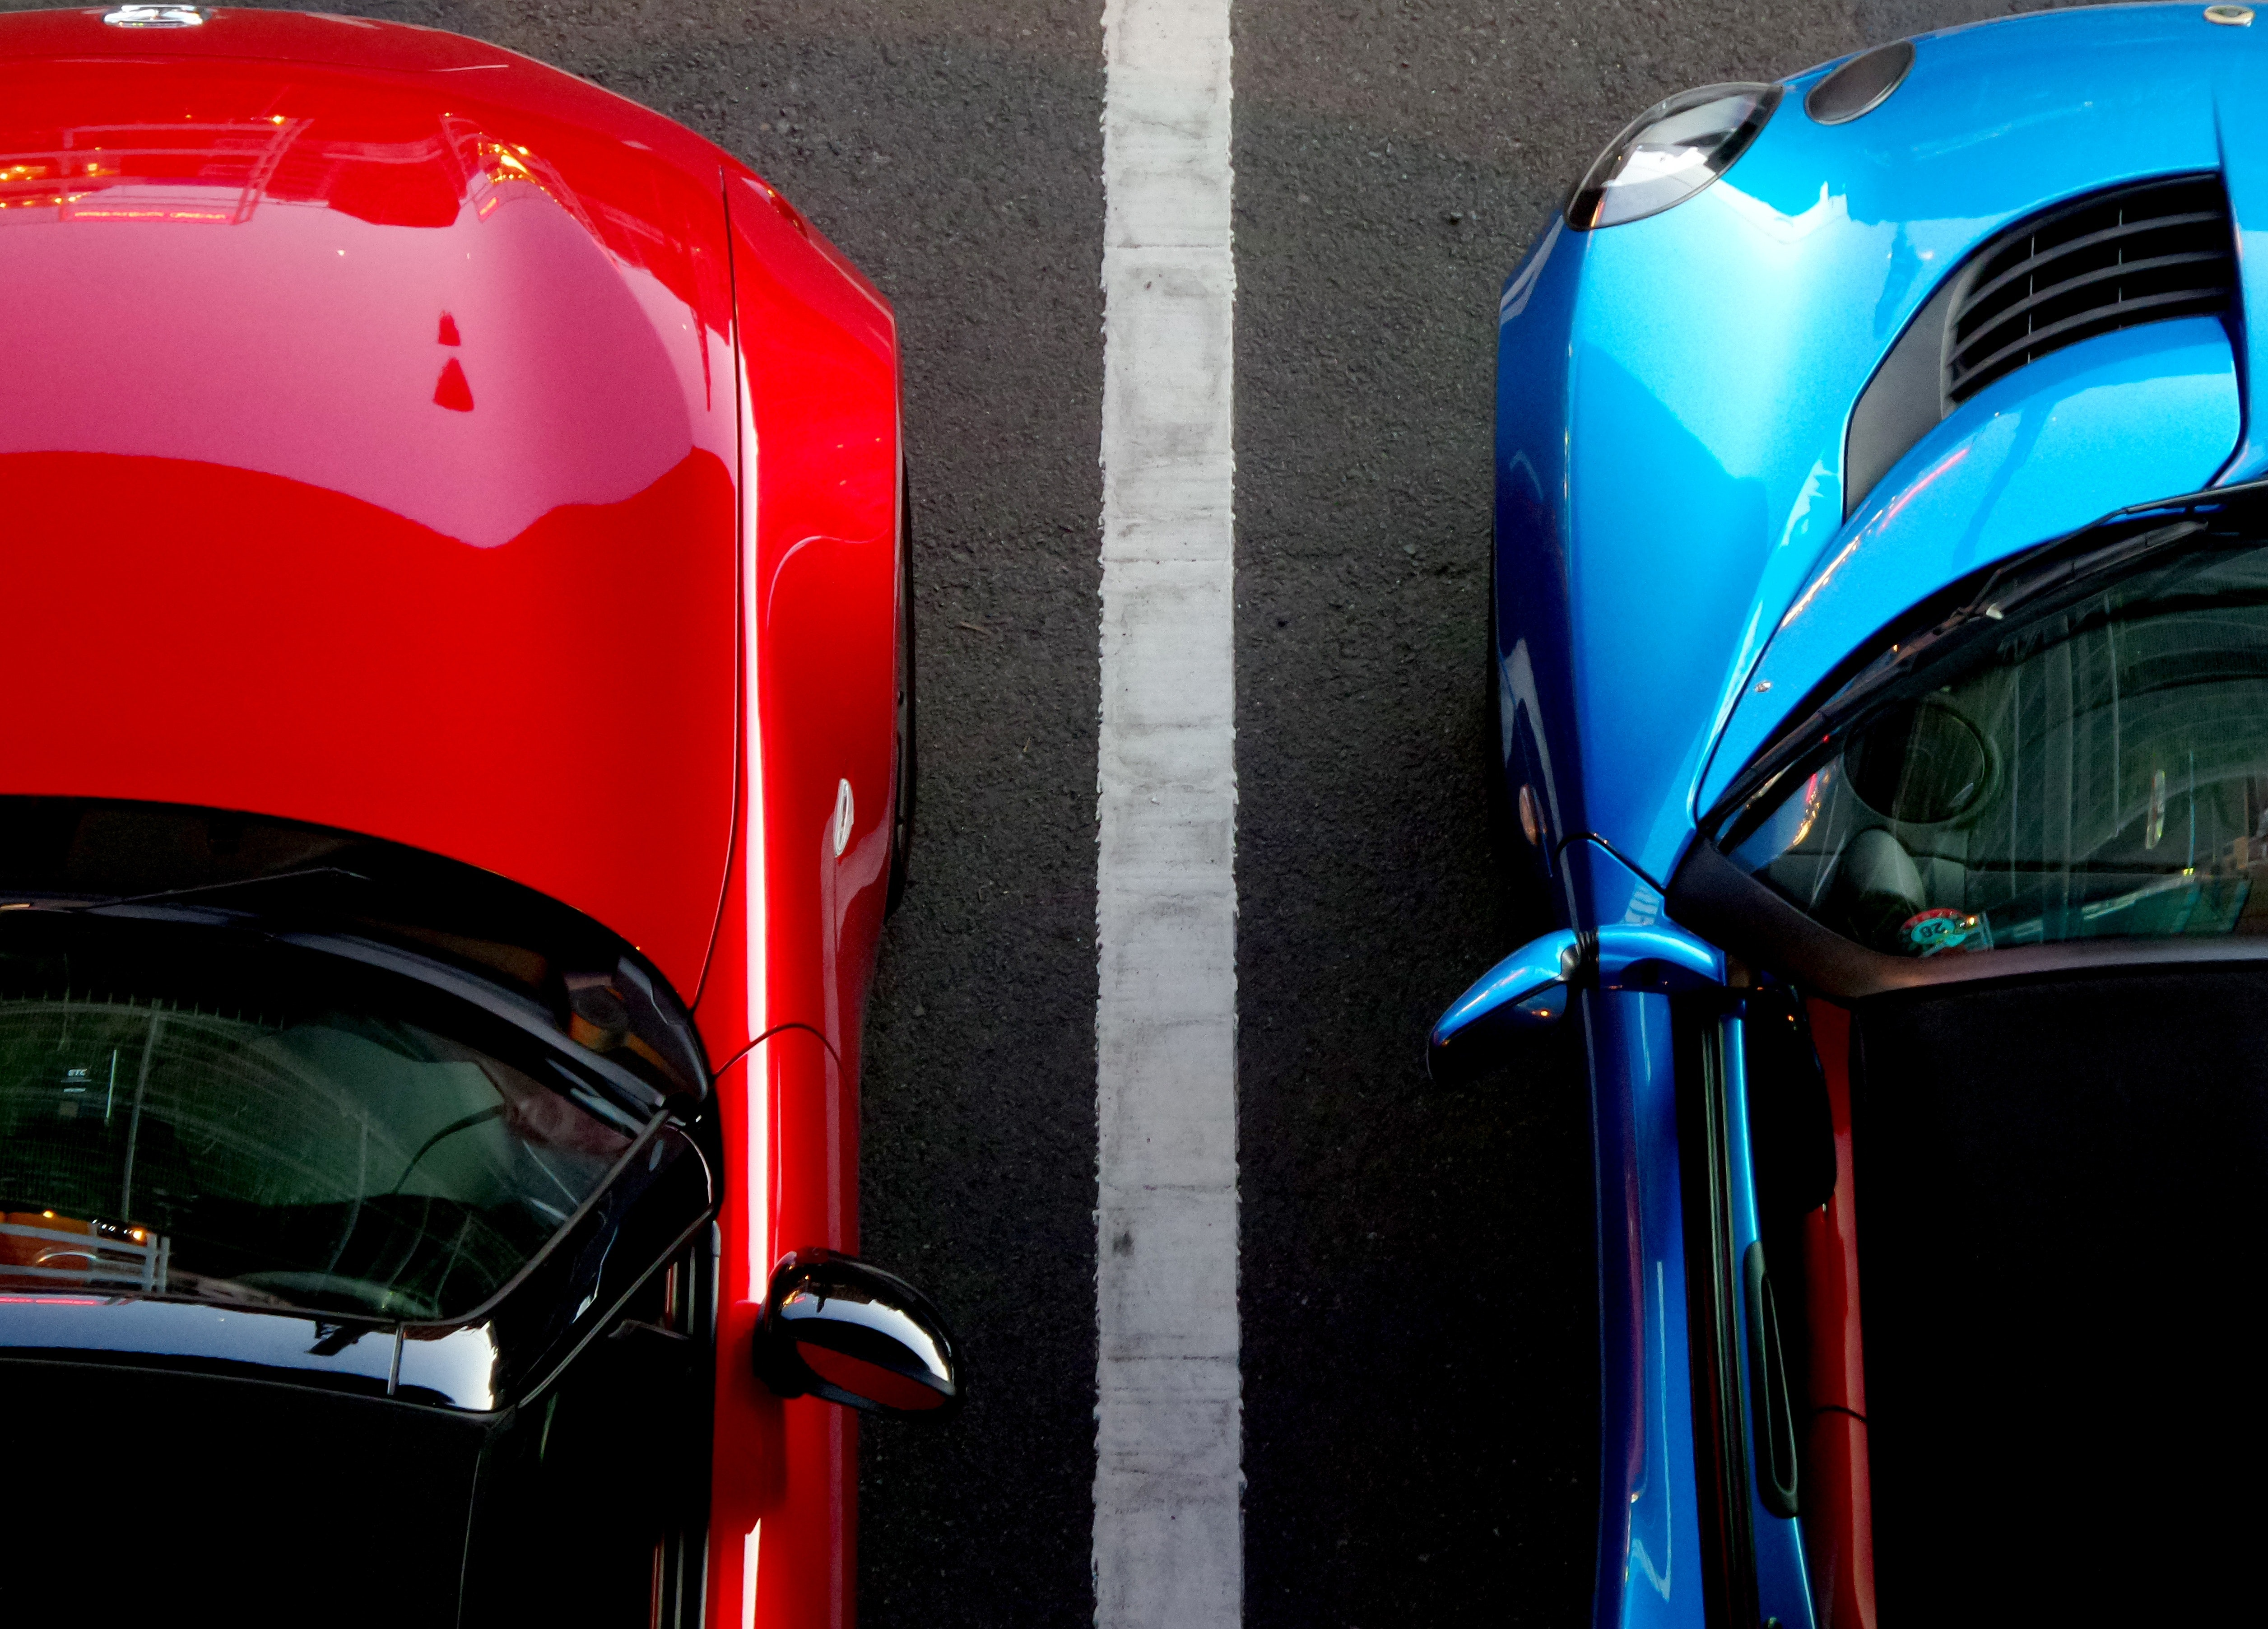 Close-up view of cars photo